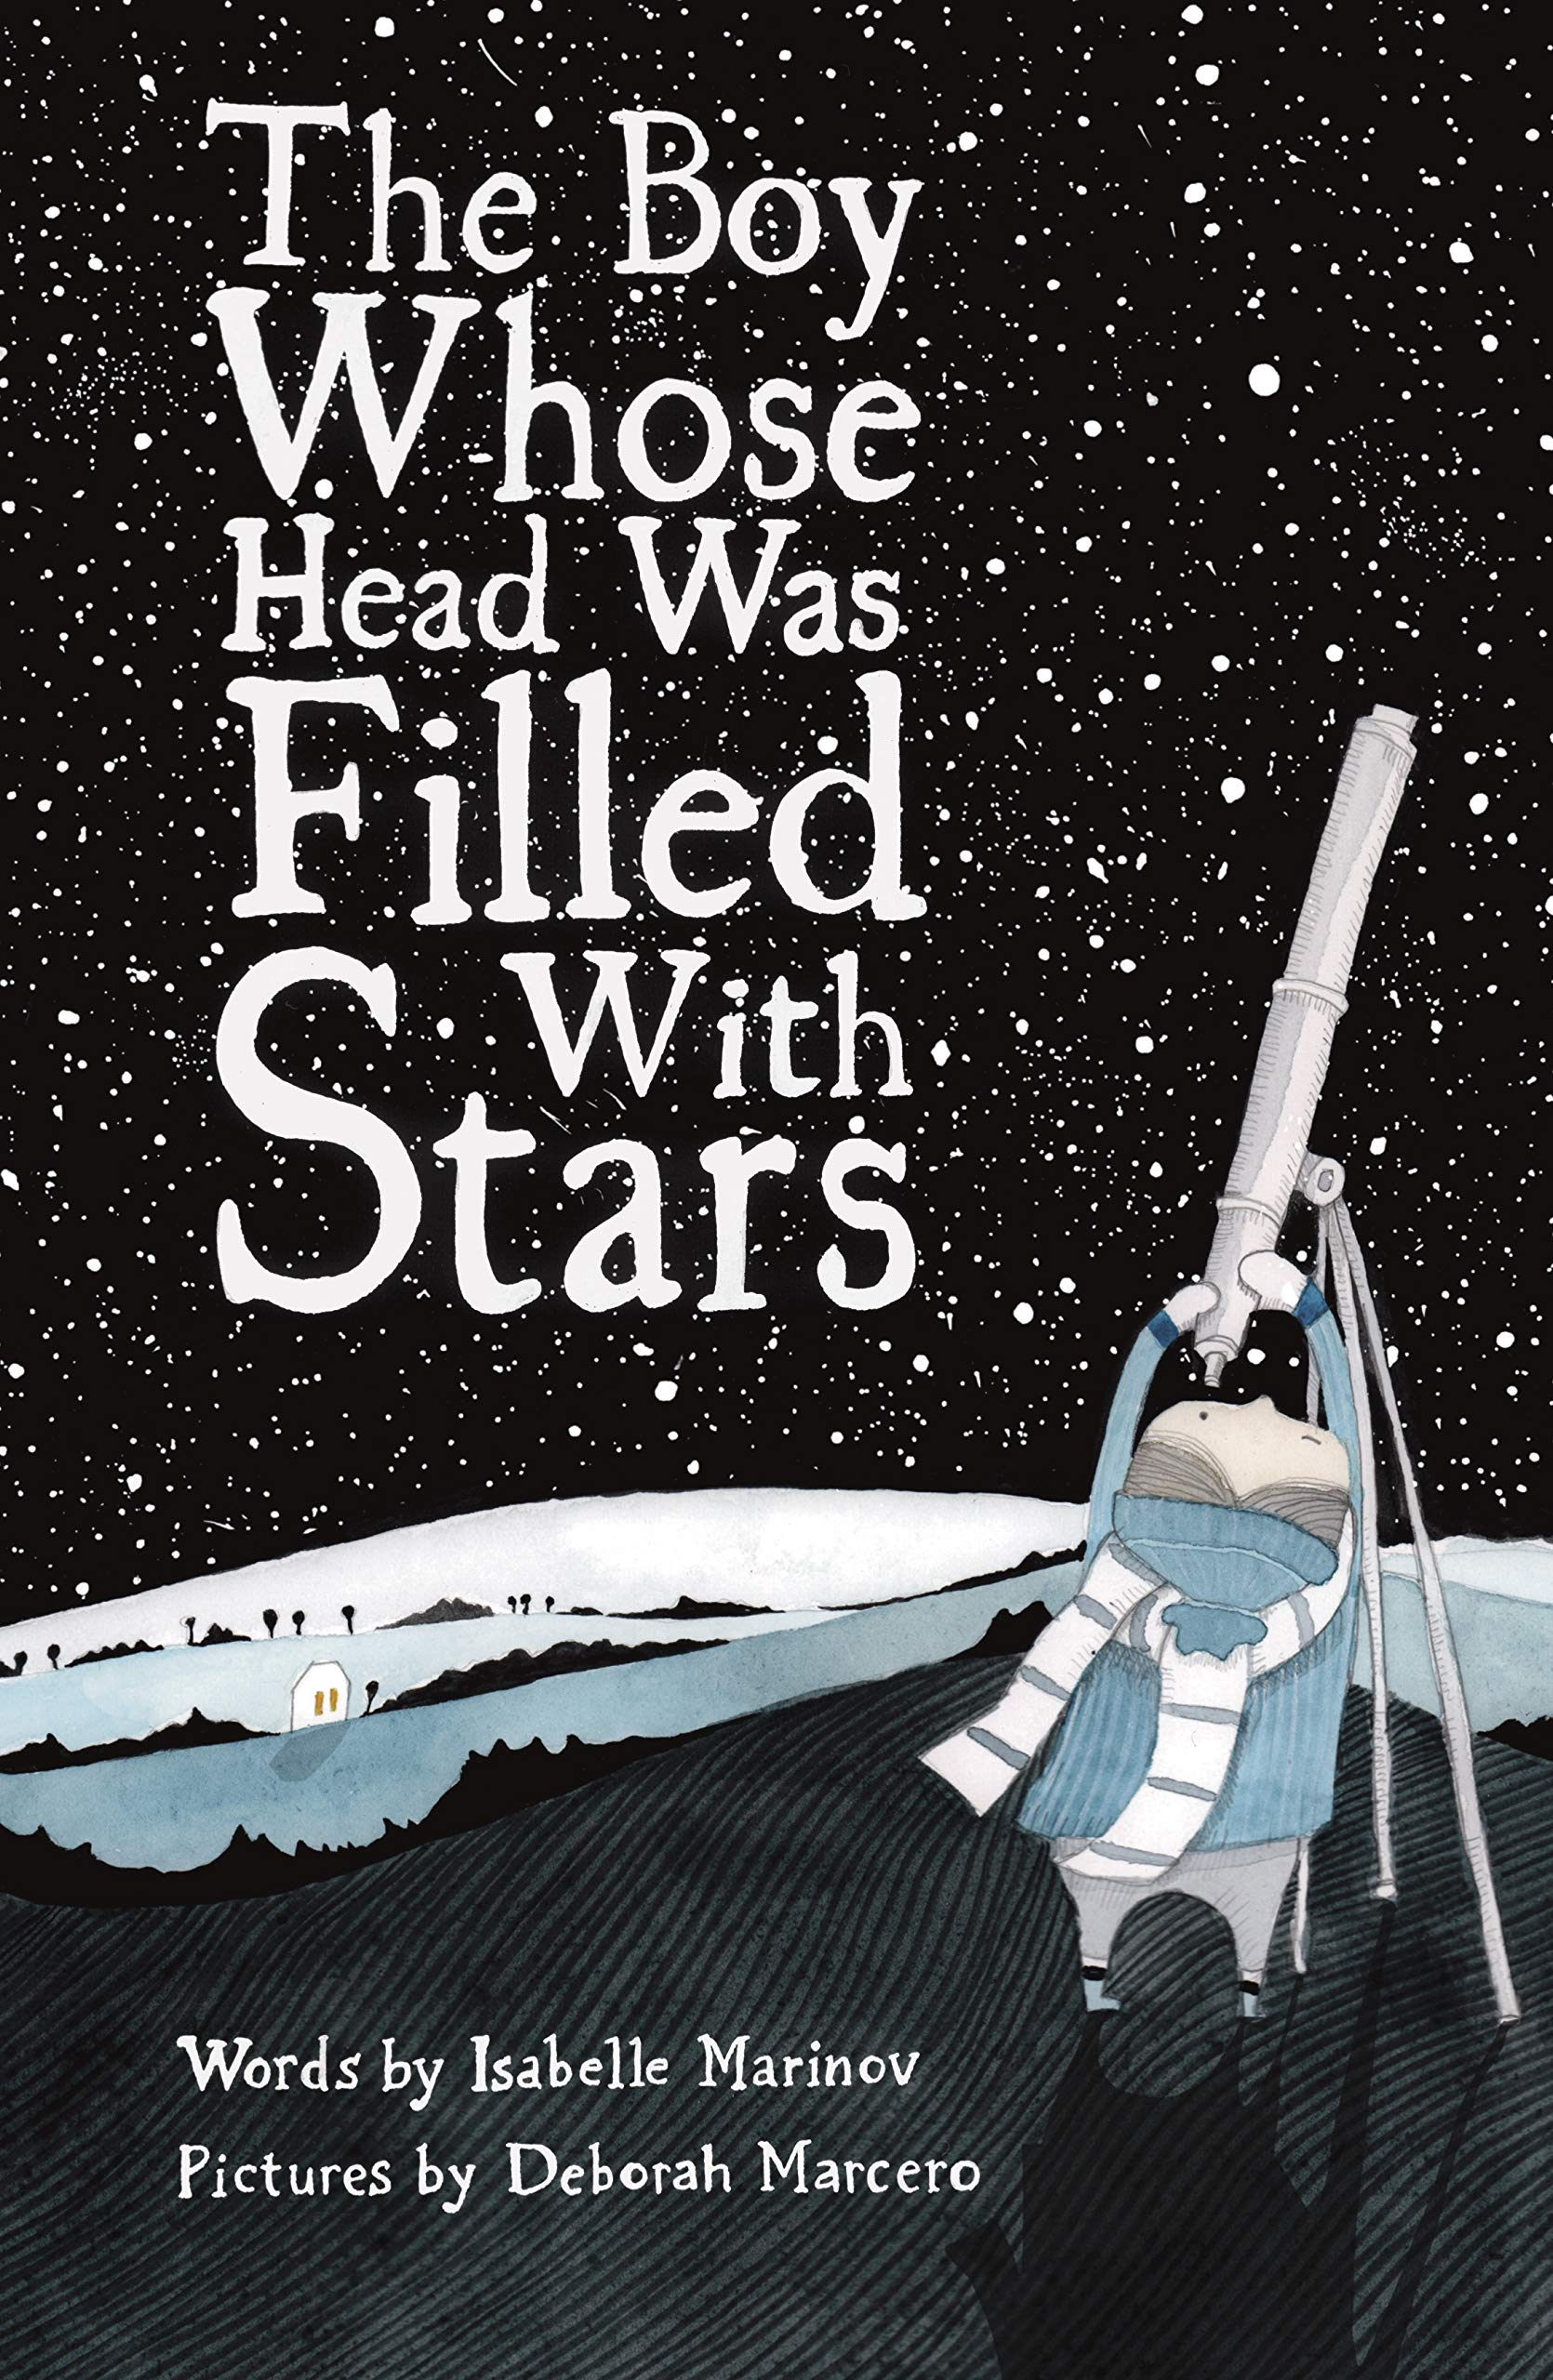 The Boy Whose Head Was Filled with Stars: A Life of Edwin Hubble: Marinov,  Isabelle, Marcero, Deborah: 9781592703173: Amazon.com: Books